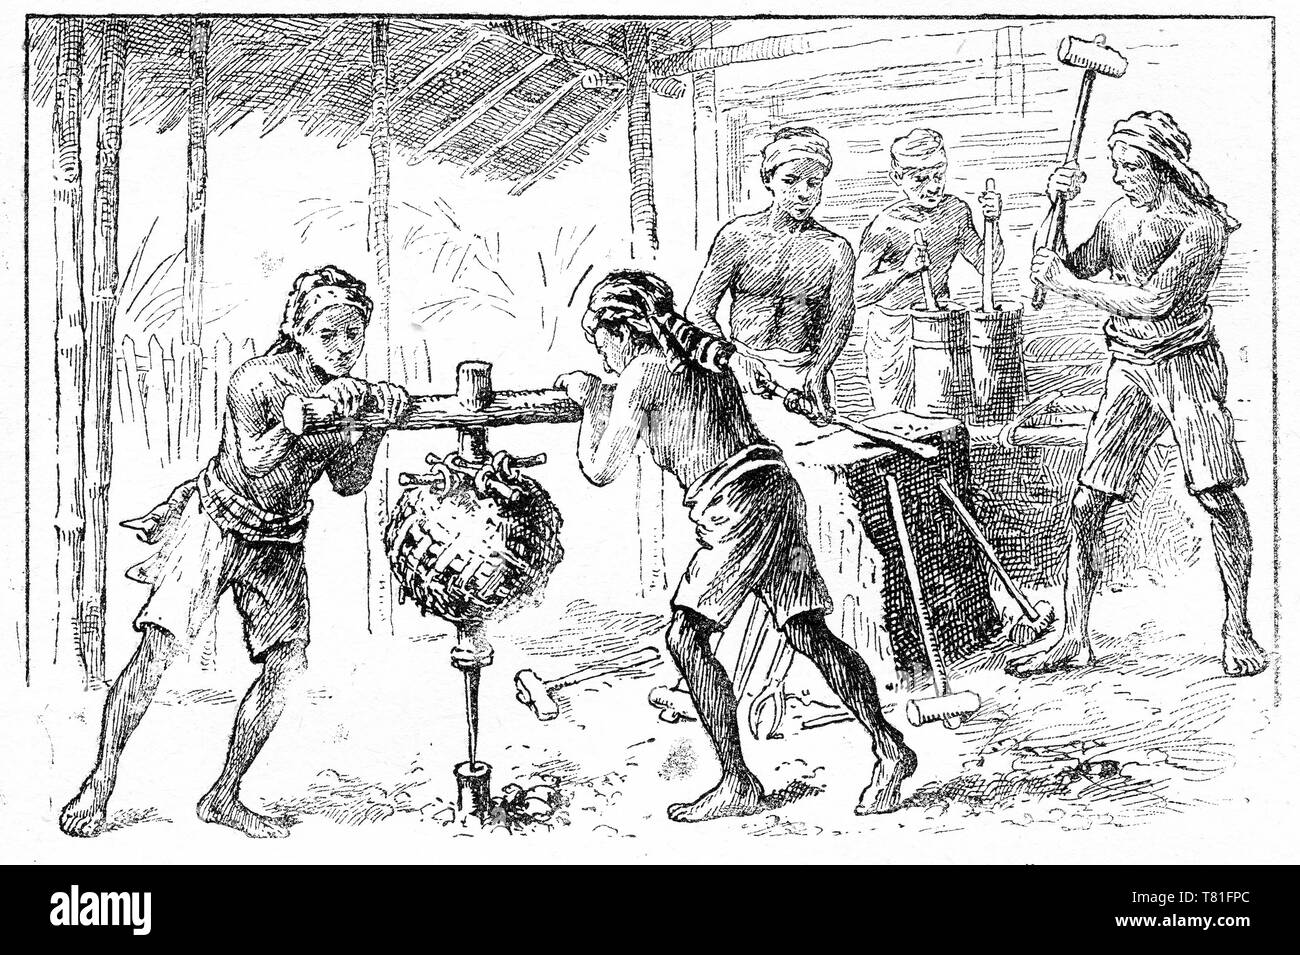 Engraving of a Asian workers in a blacksmith's shop working at an anvil. Two boys are turning a primitive weighted drill to make a hole in a piece of metal. Chatterbox magazine, 1917 - Stock Image